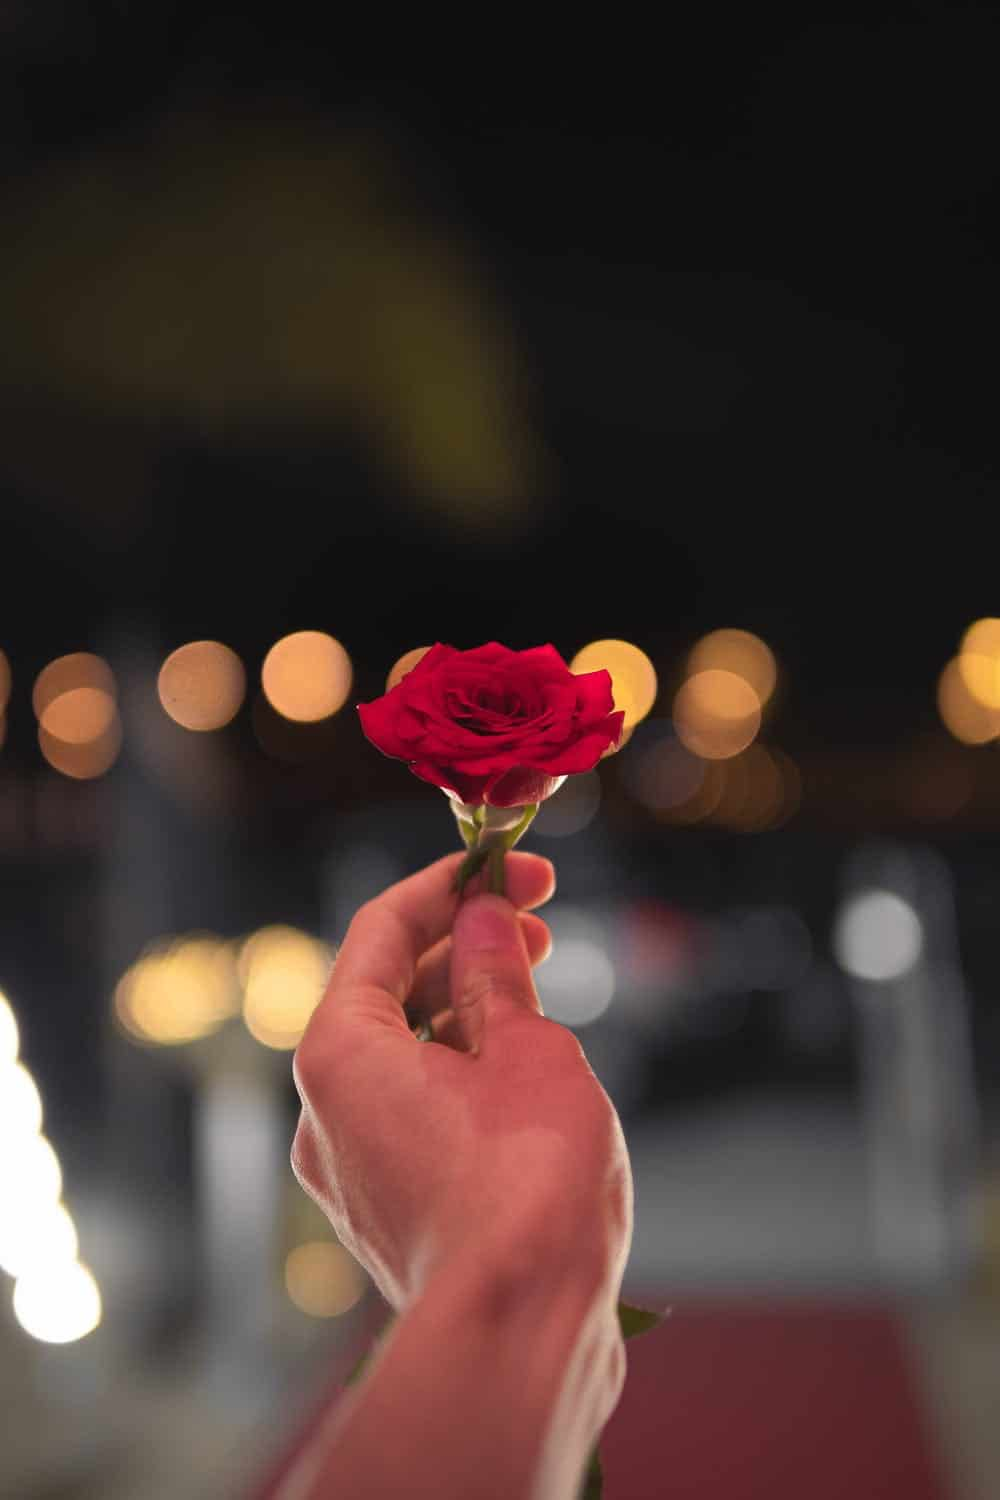 Bachelorette / https://www.pexels.com/photo/person-holding-red-rose-1324994/